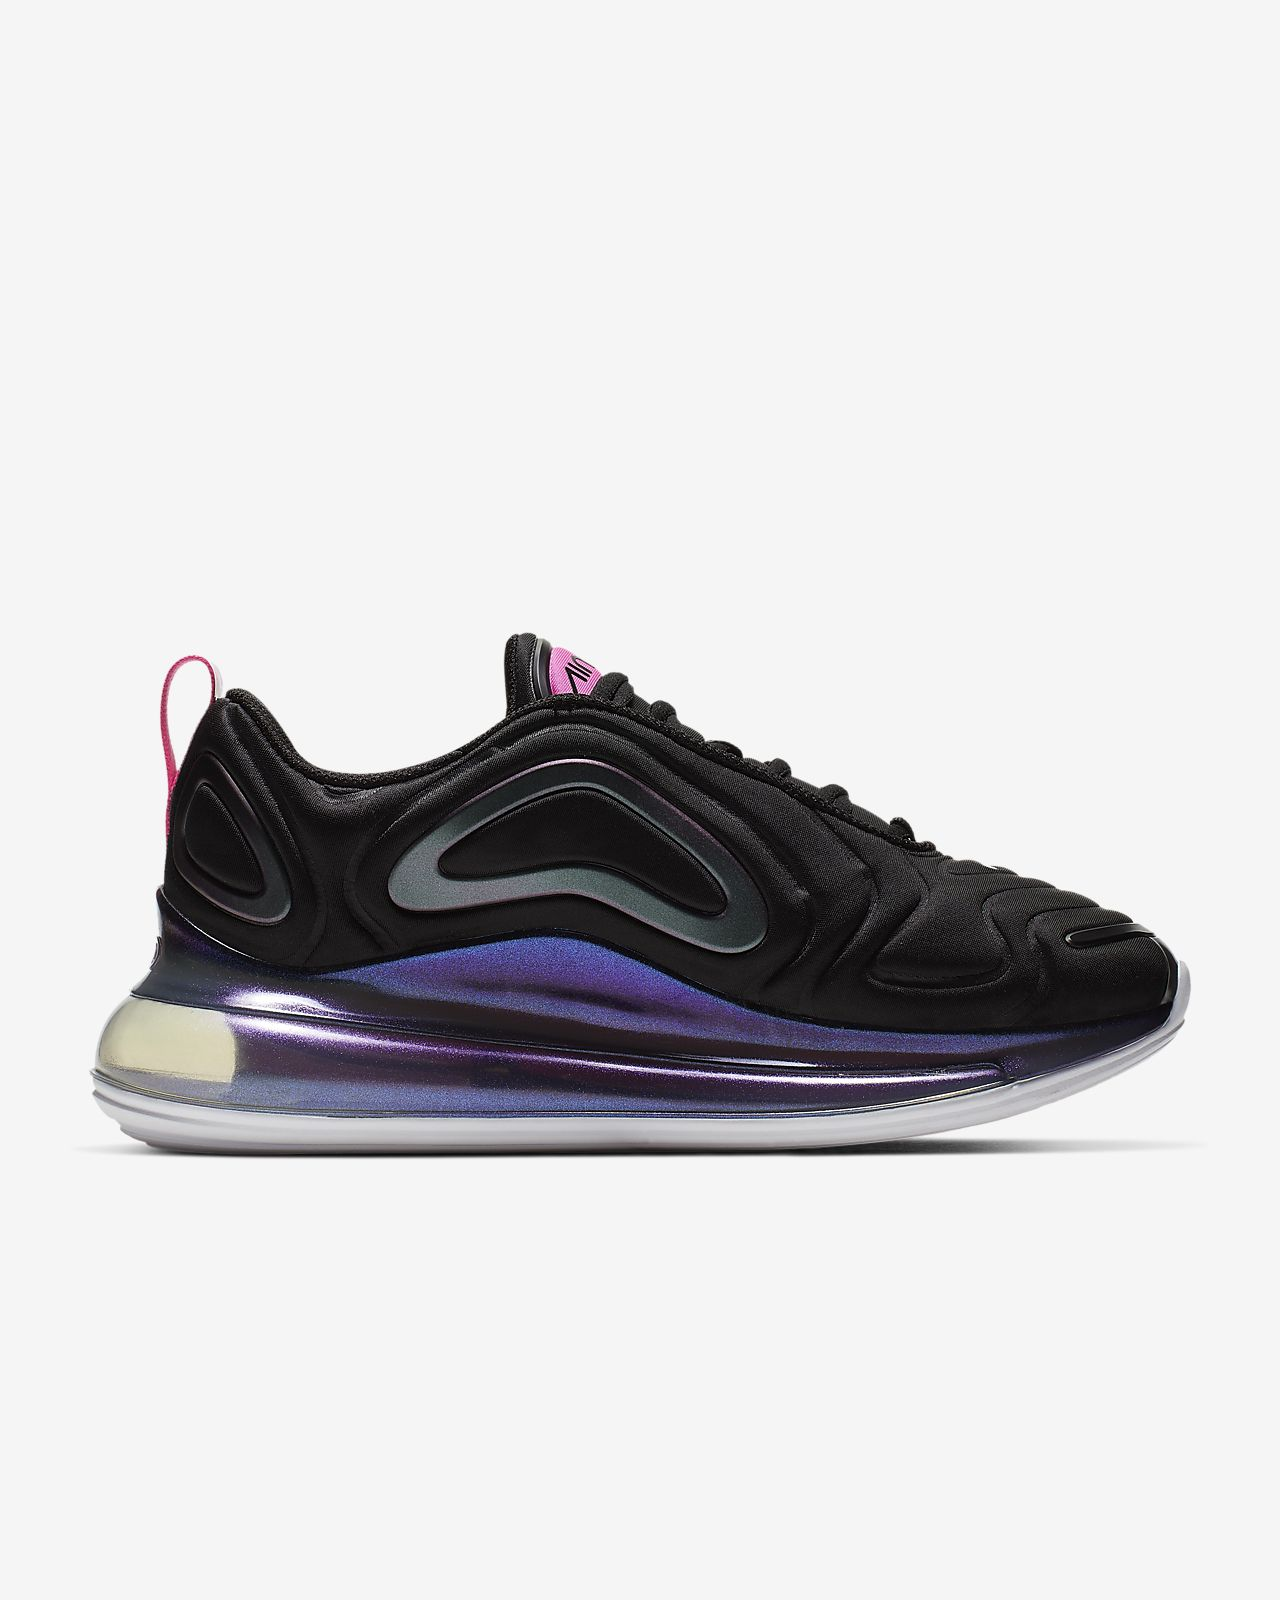 outlet store b0a82 8b350 ... Nike Air Max 720 SE Women s Shoe